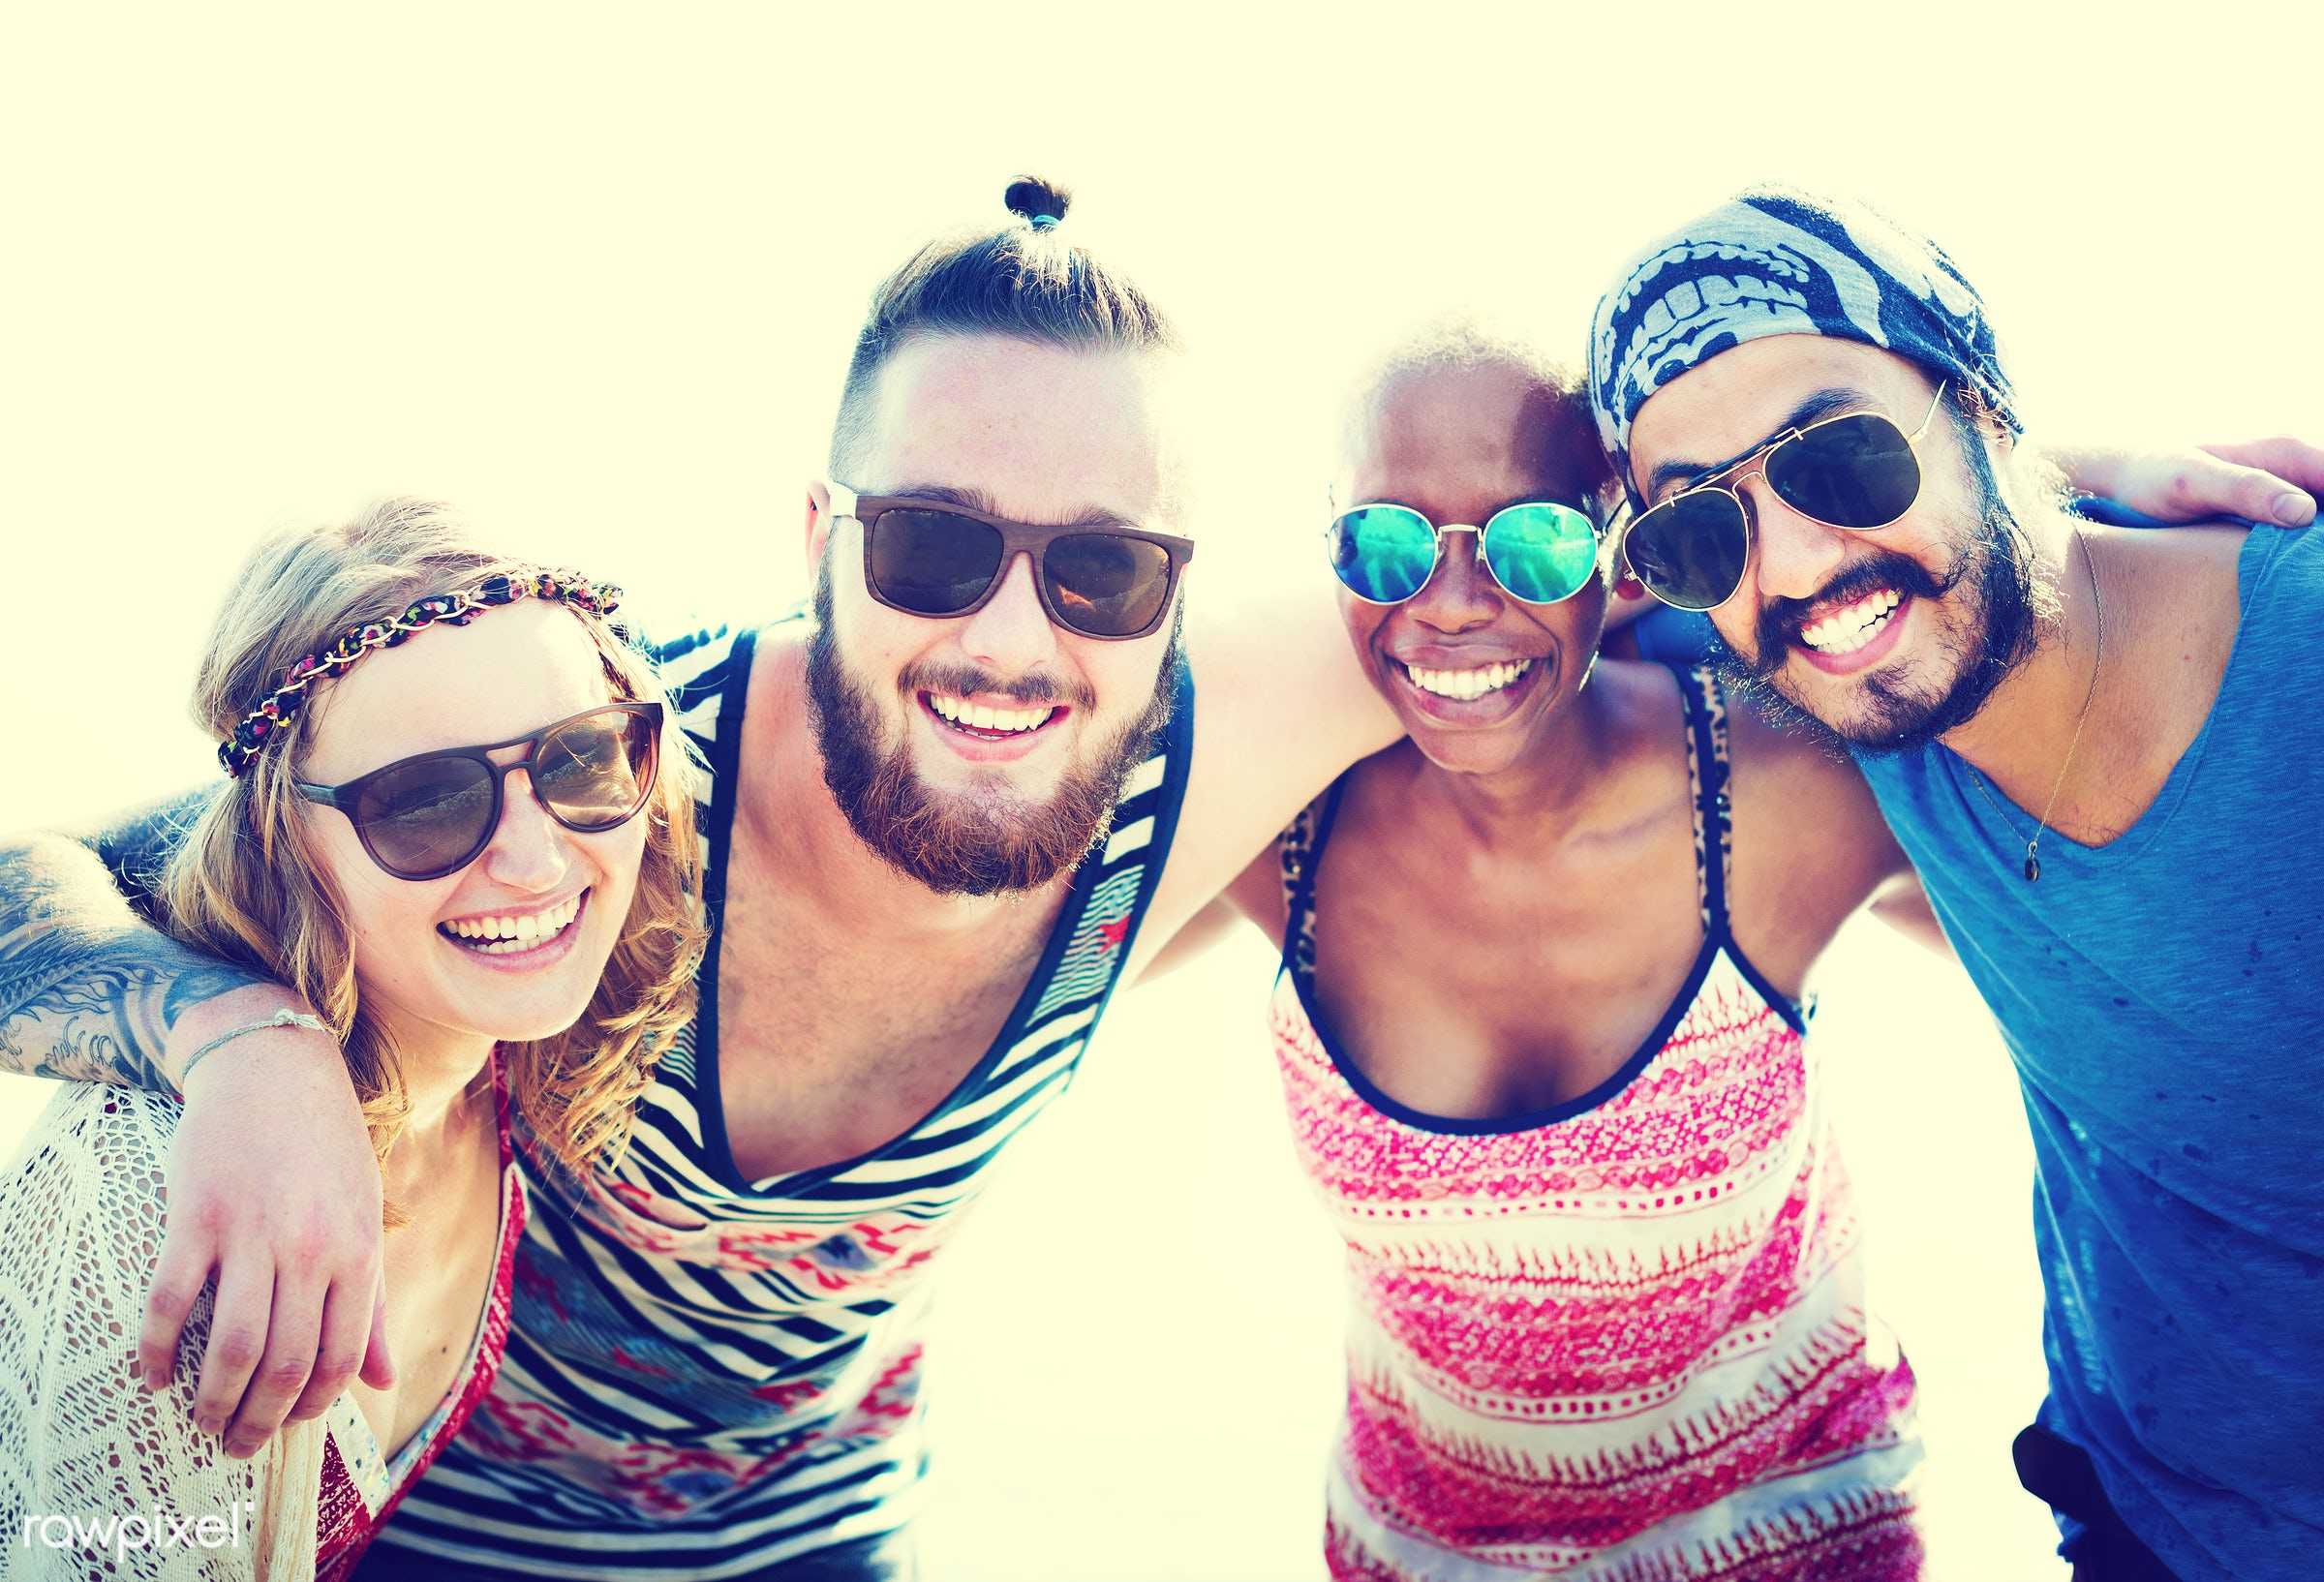 african, african descent, beach, beautiful, bonding, bright, casual, cheerful, close up, colorful, day, diverse, enjoyment,...